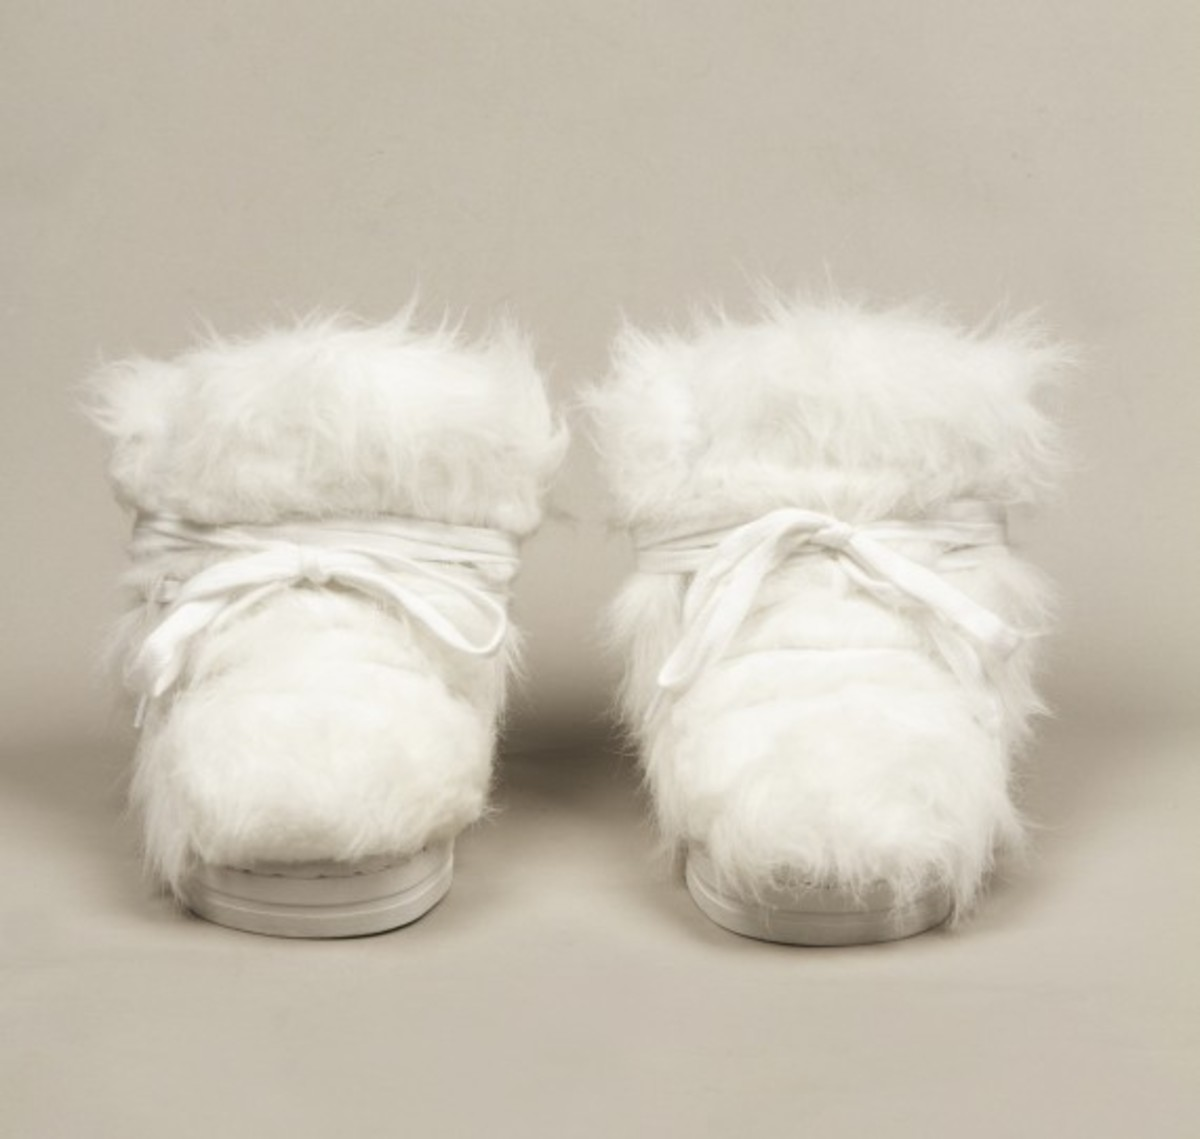 terence-koh-opening-ceremony-forfex-furry-sneakers-02